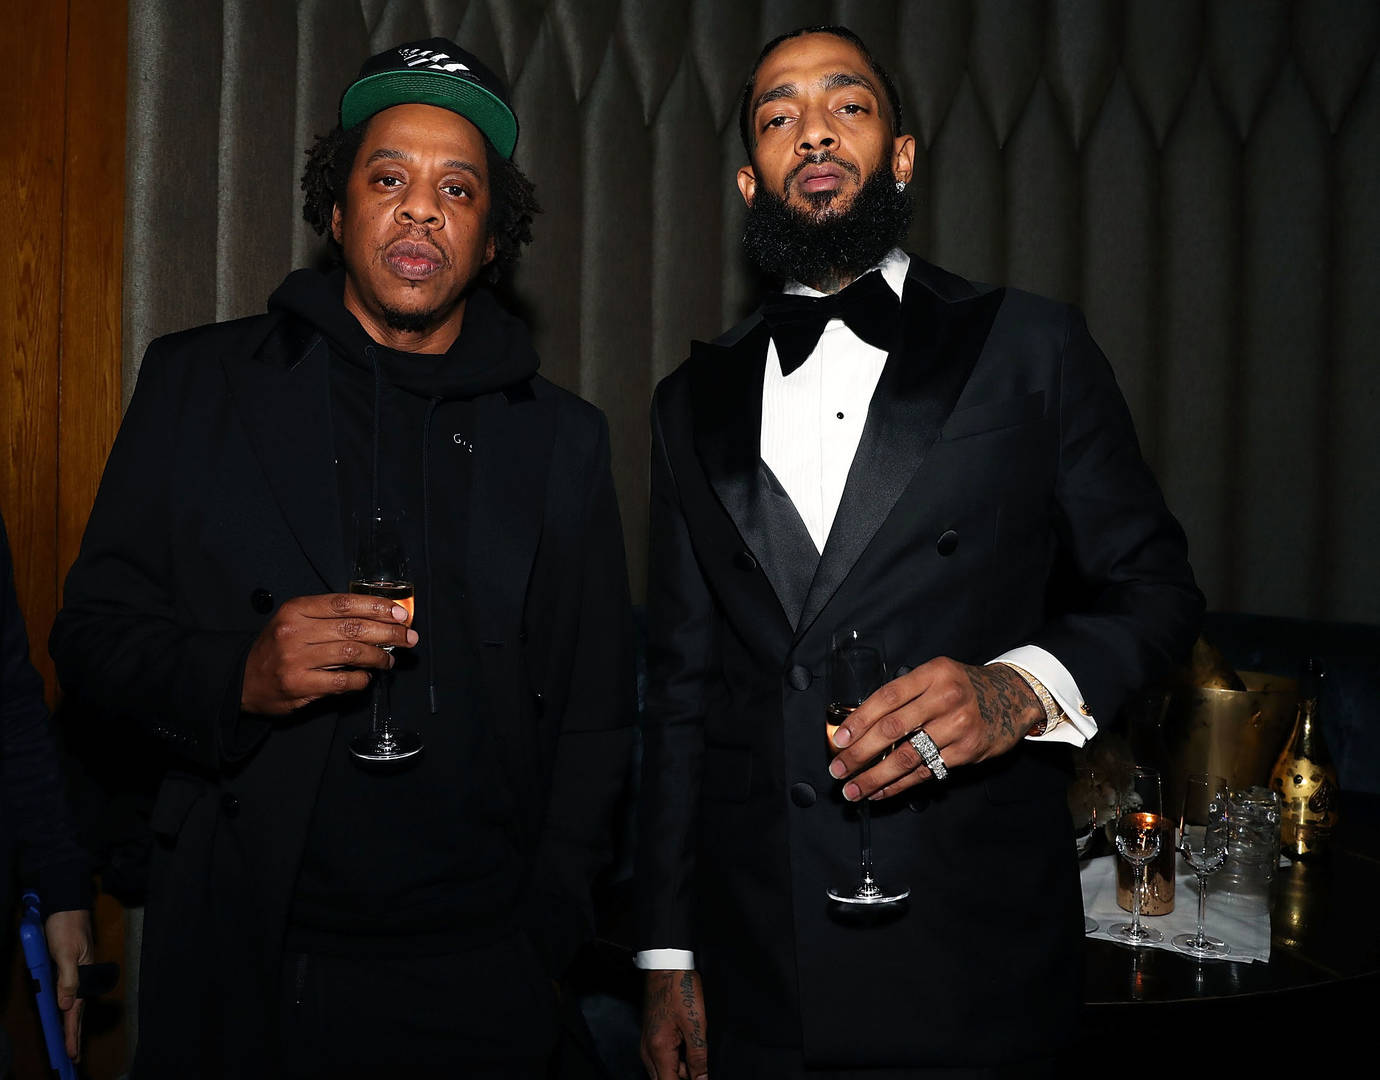 """Beyoncé's Mother On Nipsey Hussle's Death: """"Jay-Z Loved Him So Much"""""""